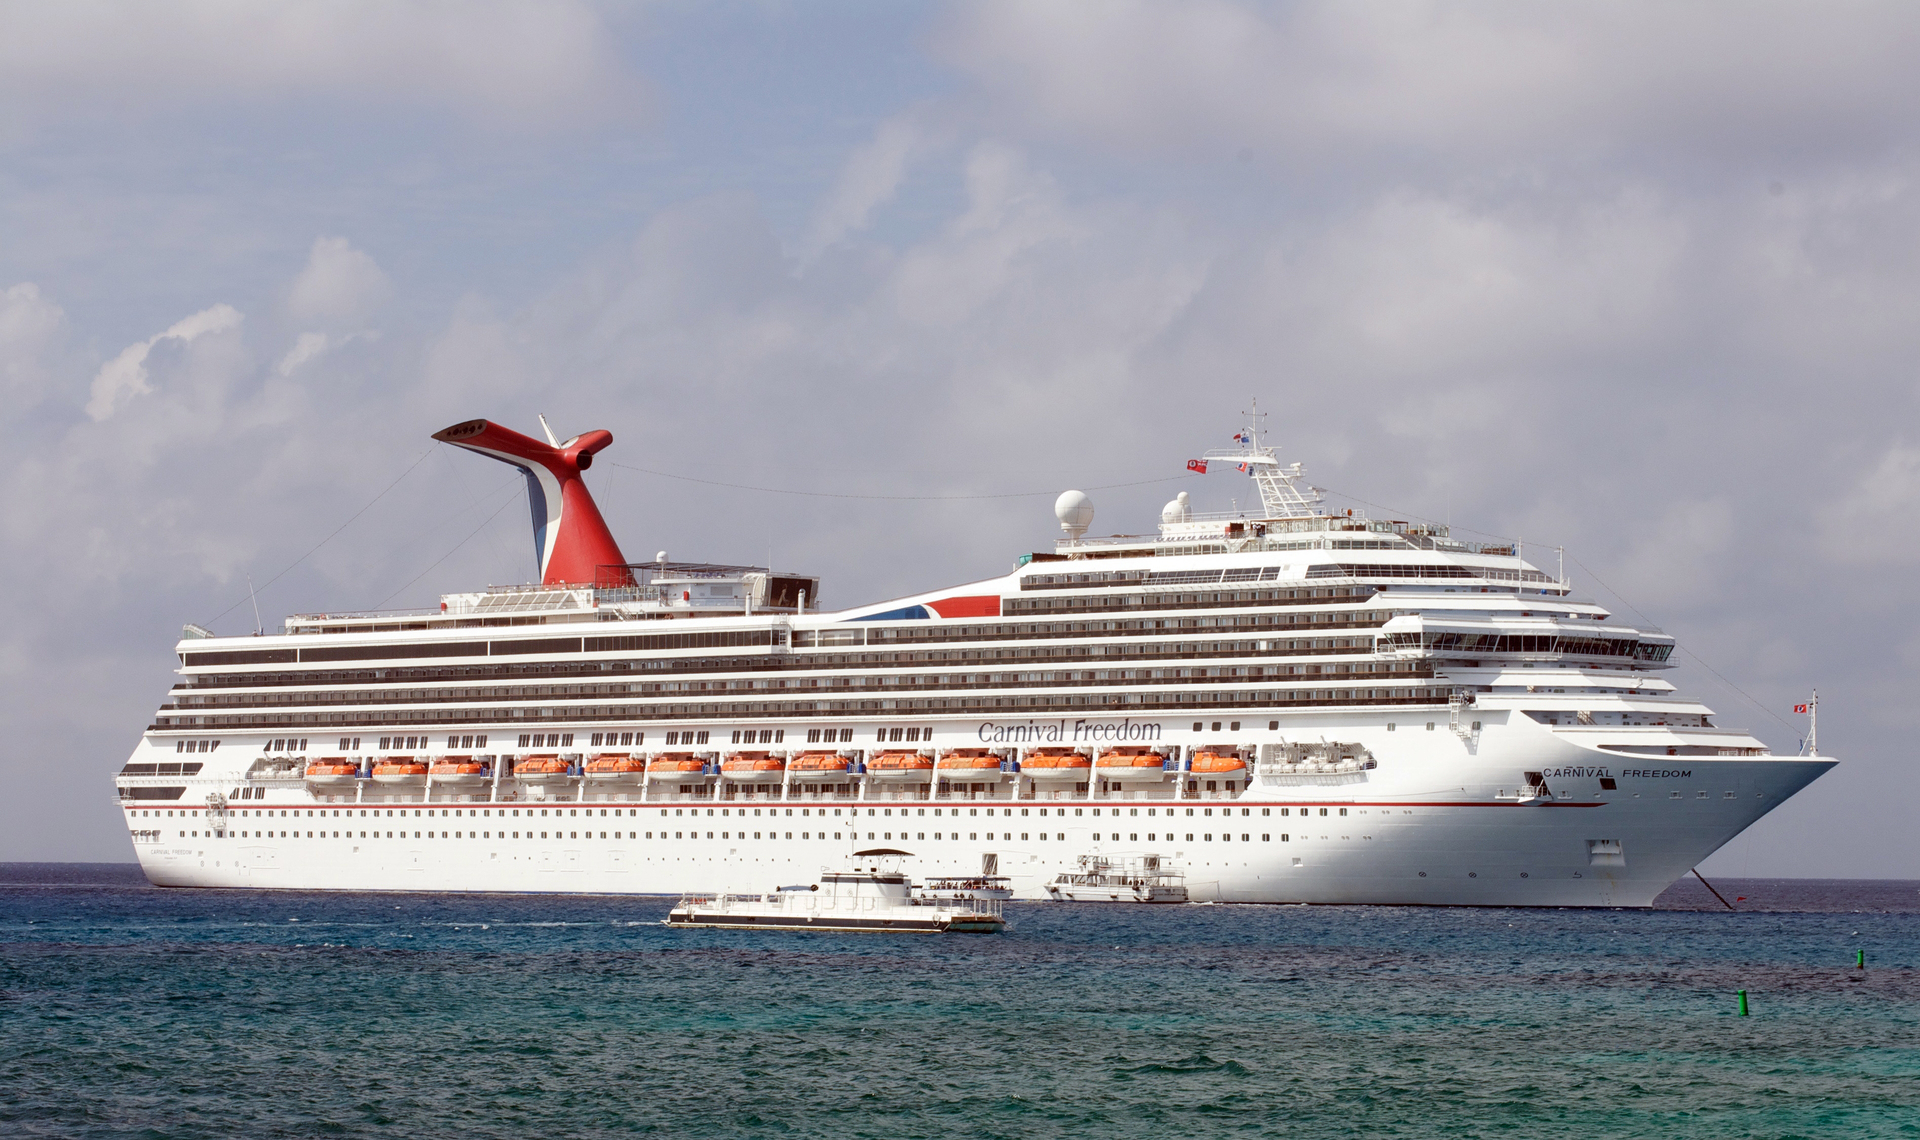 5 Night Round Trip Cruise From Galveston Aboard The Carnival Freedom Leaving December 3 2016